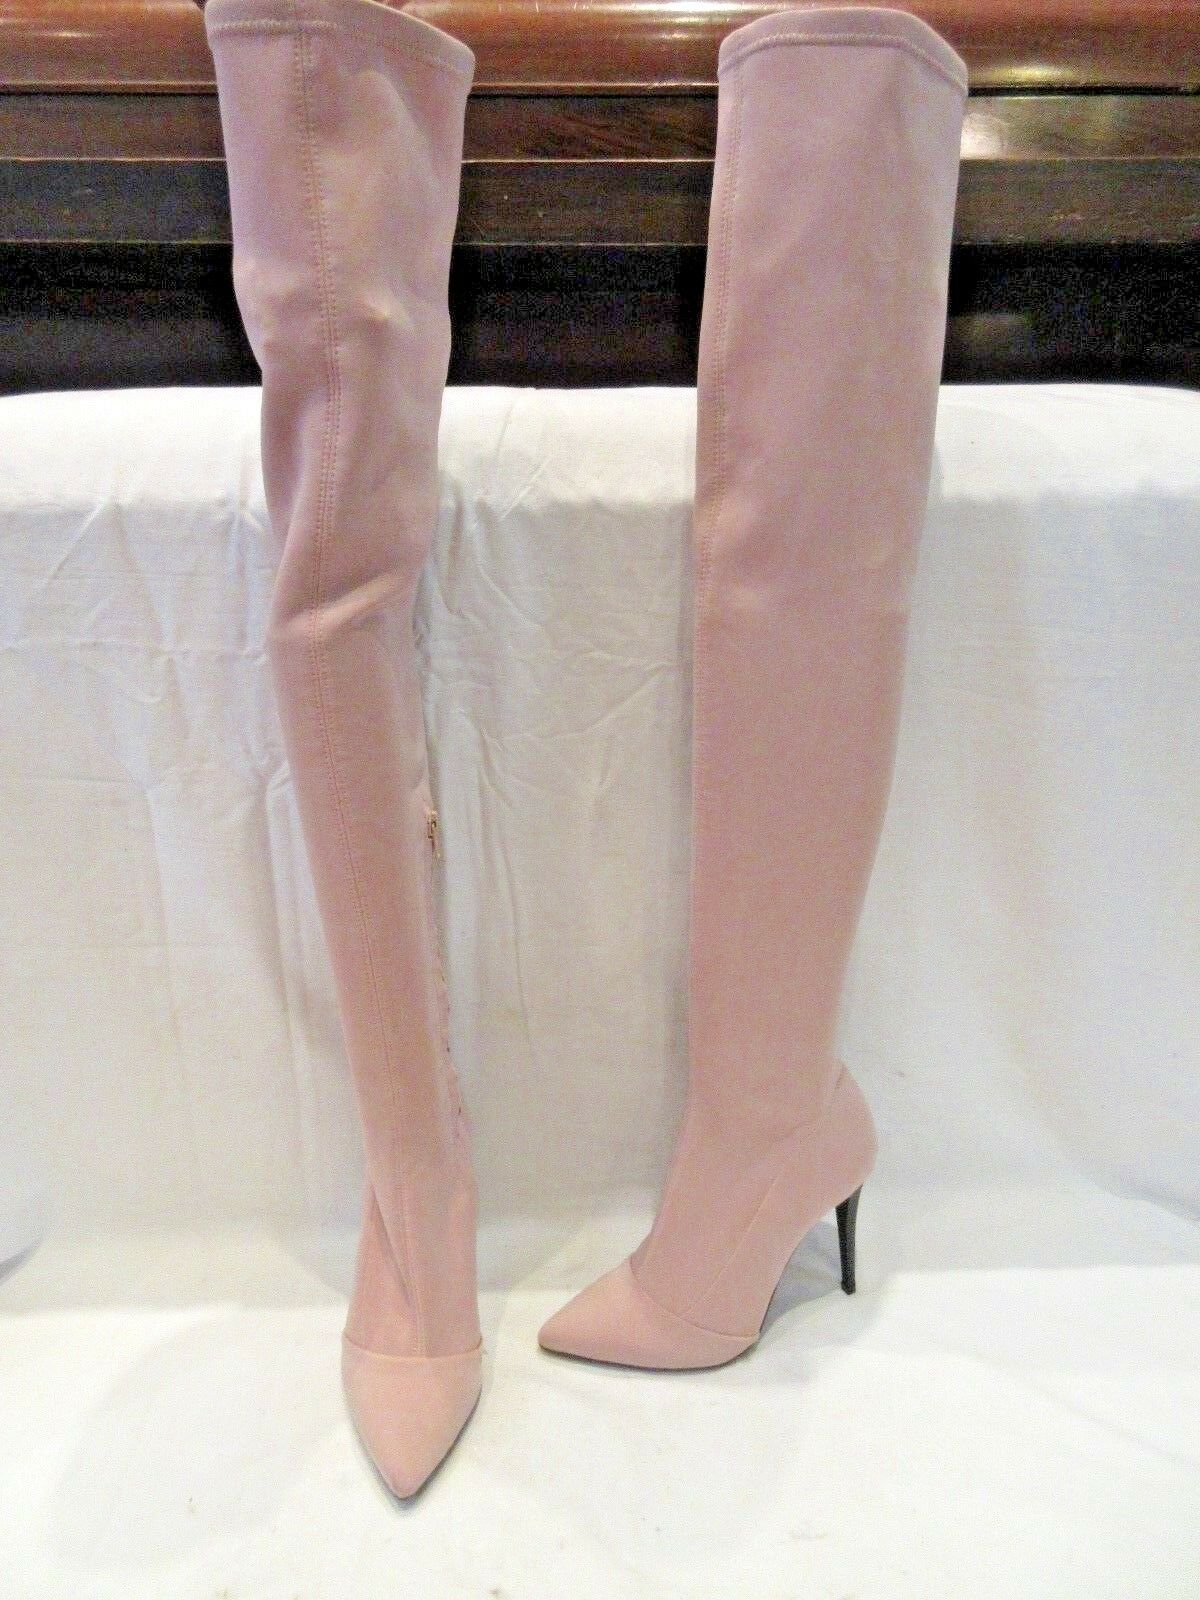 BNWD TOPSHOP STRETCH OVER THE KNEE PULL ON 37 BOOTS UK 4 EU 37 ON US 6.5 (1535) fc5af4